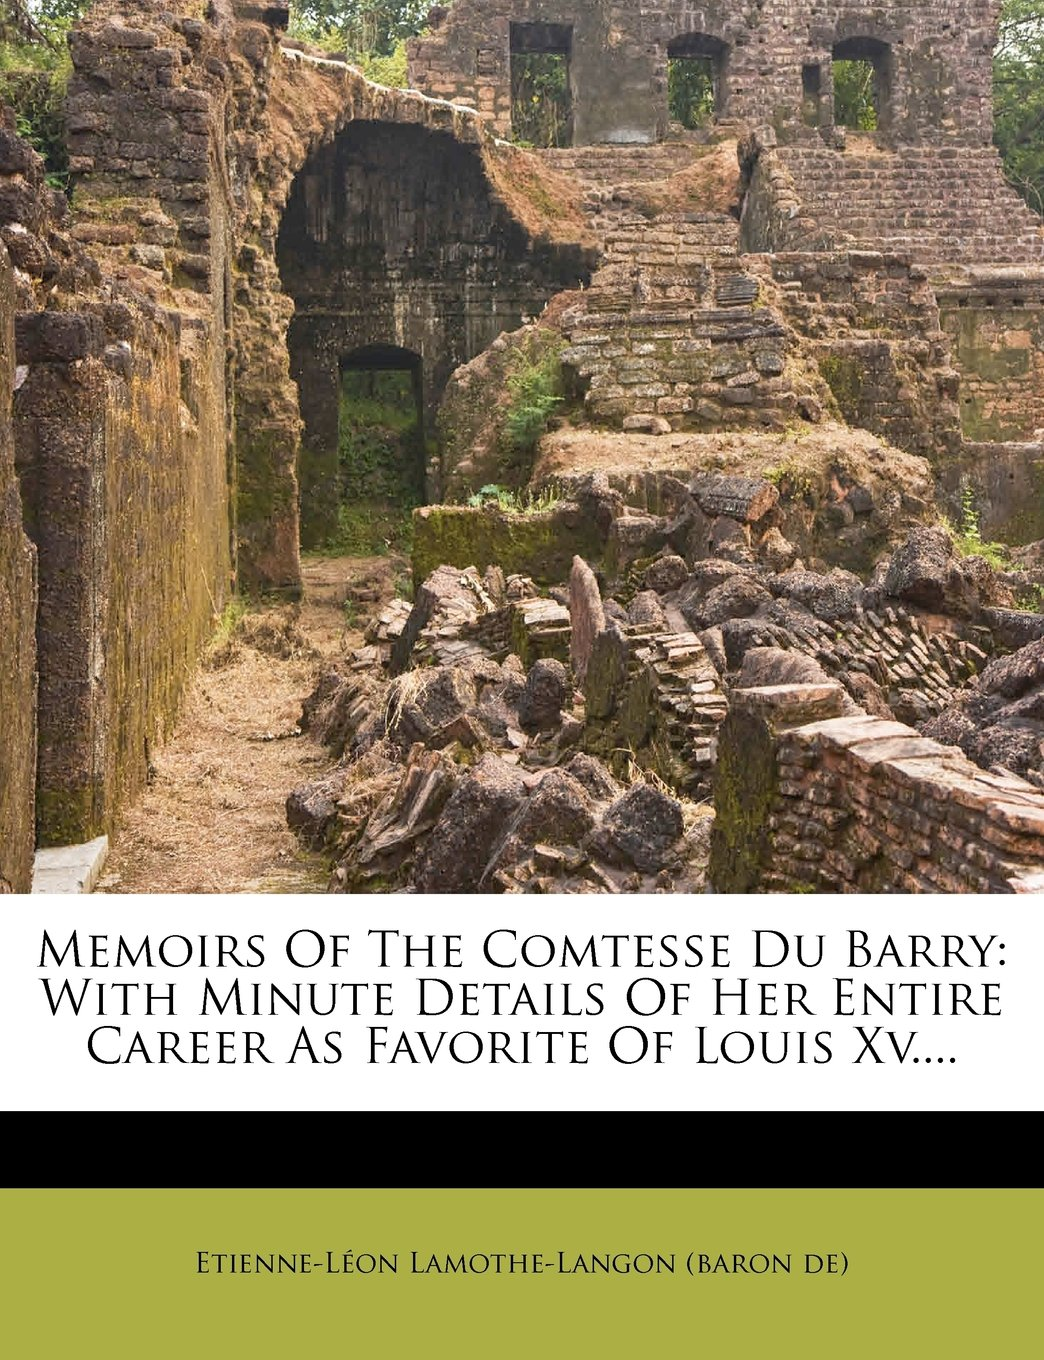 Memoirs Of The Comtesse Du Barry: With Minute Details Of Her Entire Career As Favorite Of Louis Xv.... ebook